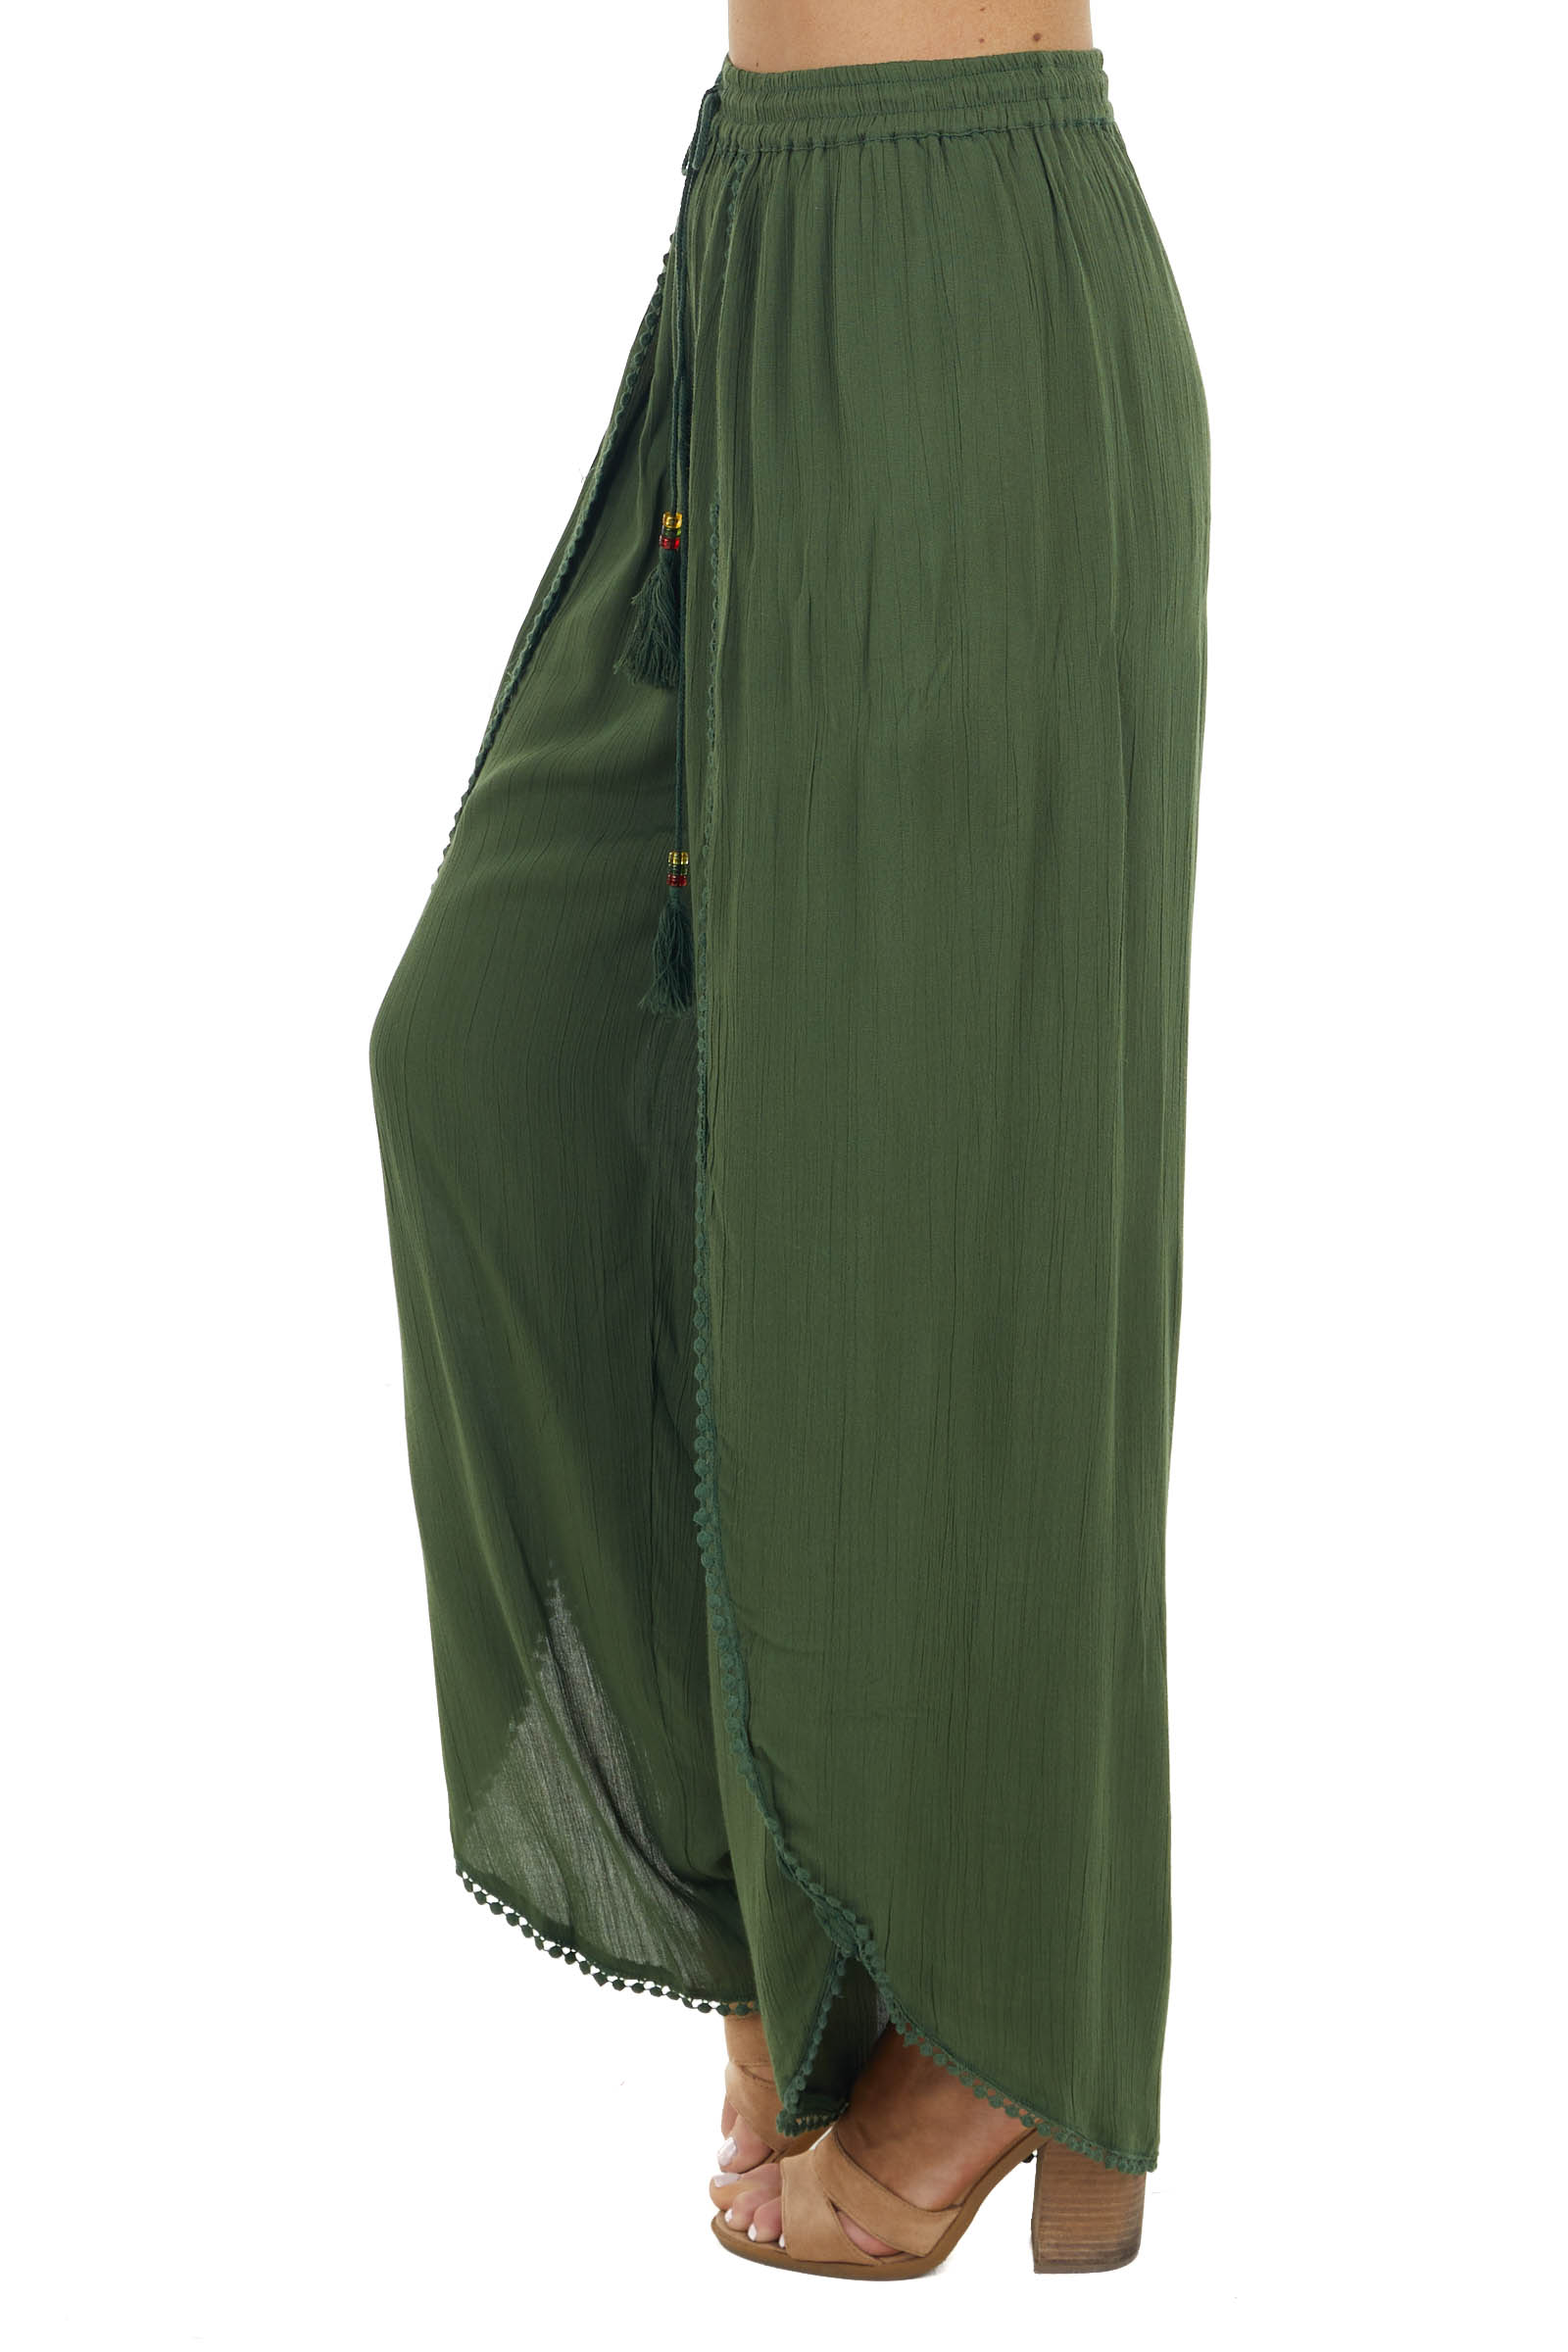 Hunter Green Open Leg Wrap Pants with Tassel and Lace Detail